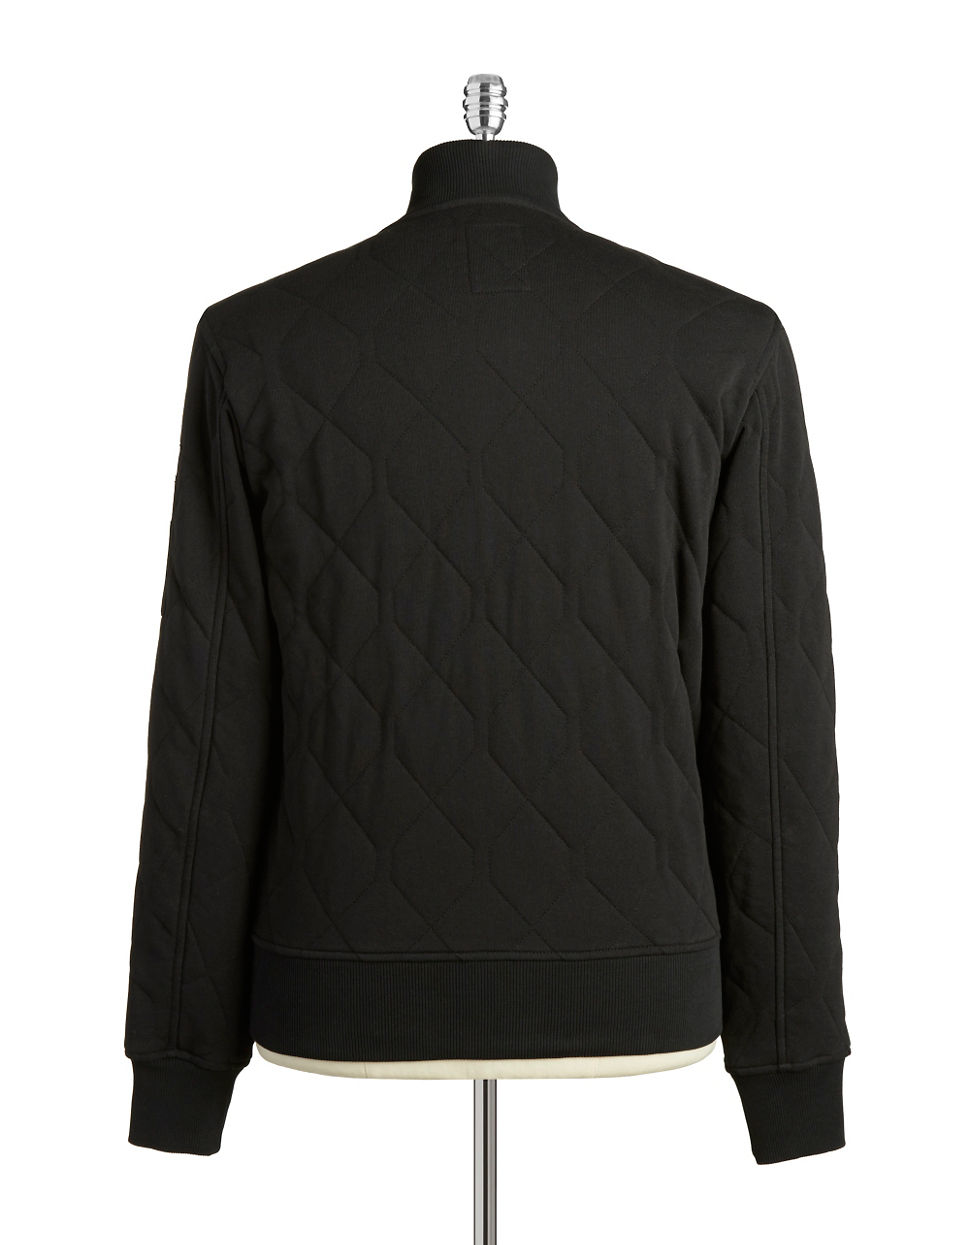 g star raw quilted sweater in black for men lyst. Black Bedroom Furniture Sets. Home Design Ideas